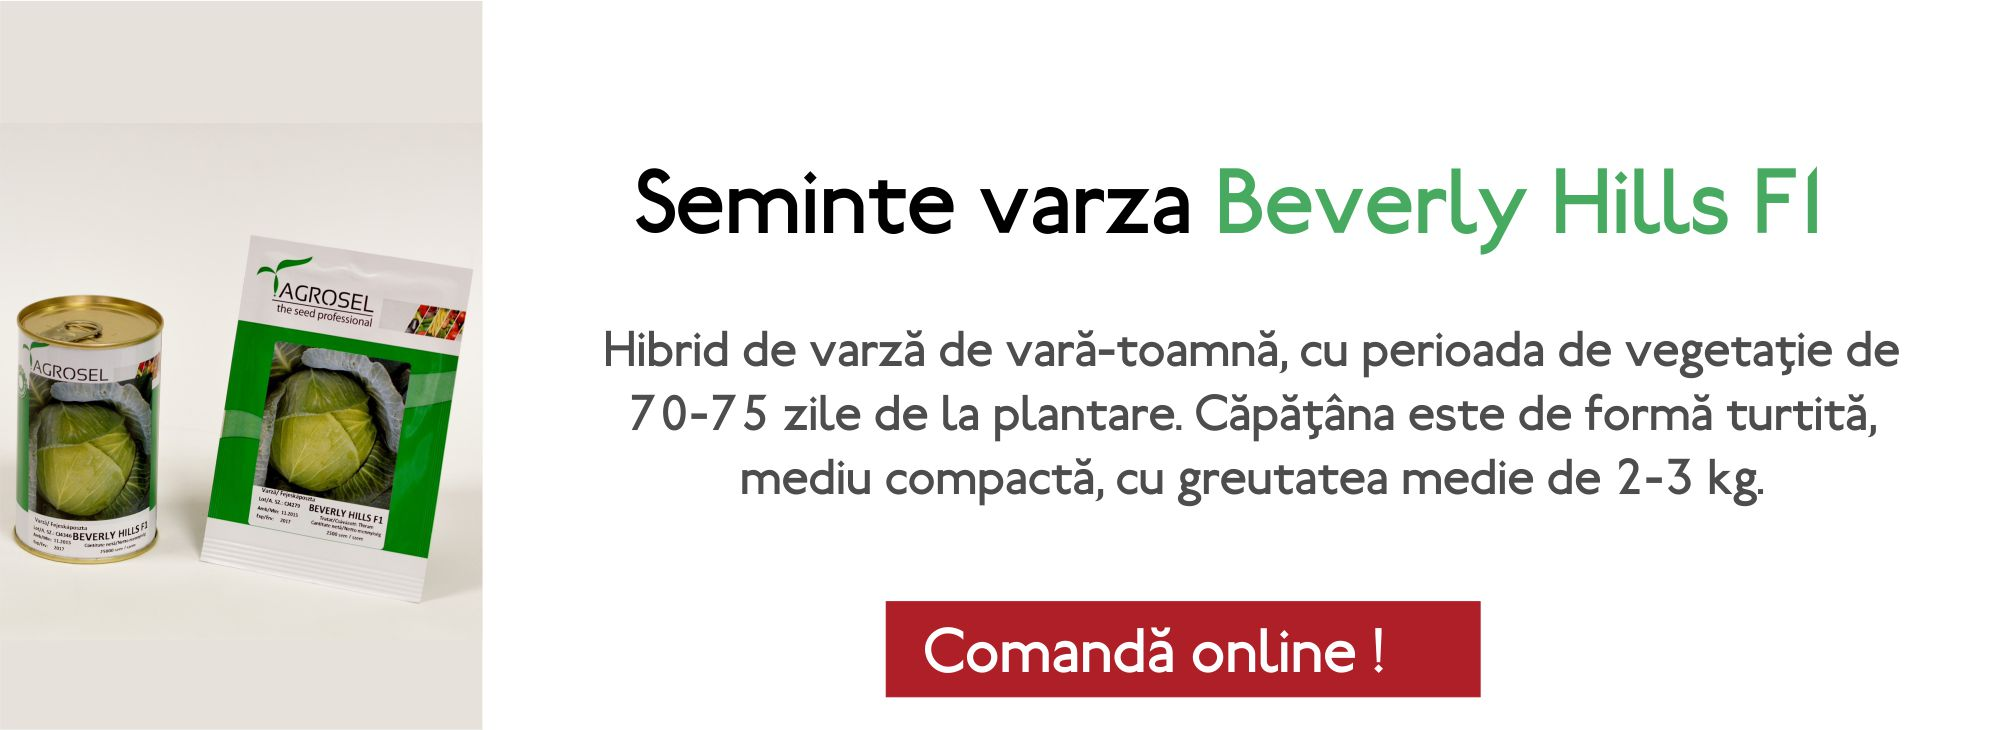 seminte-varza-beverly-hills-f1